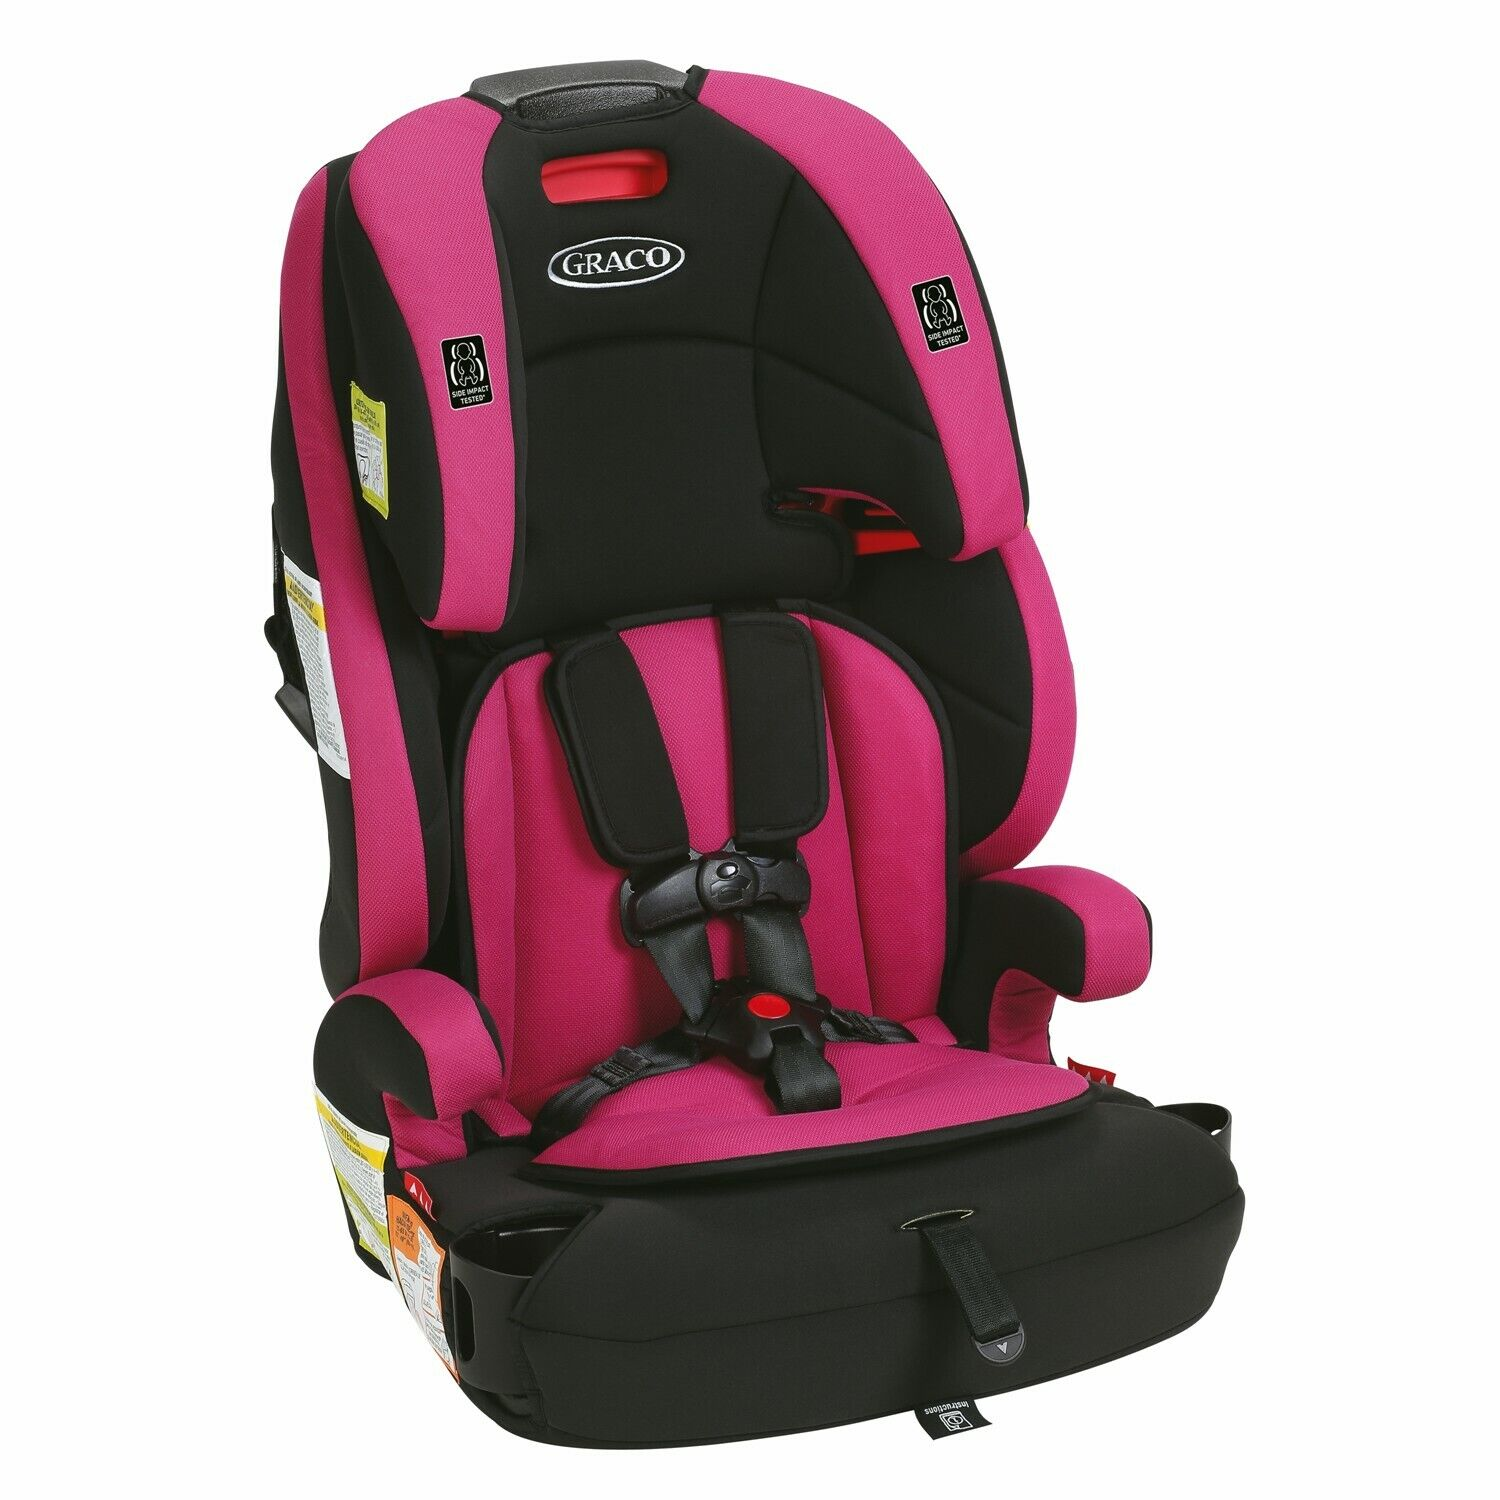 Graco Wayz 3-in-1 Harness Booster Car Seat Child Kids Two Cu